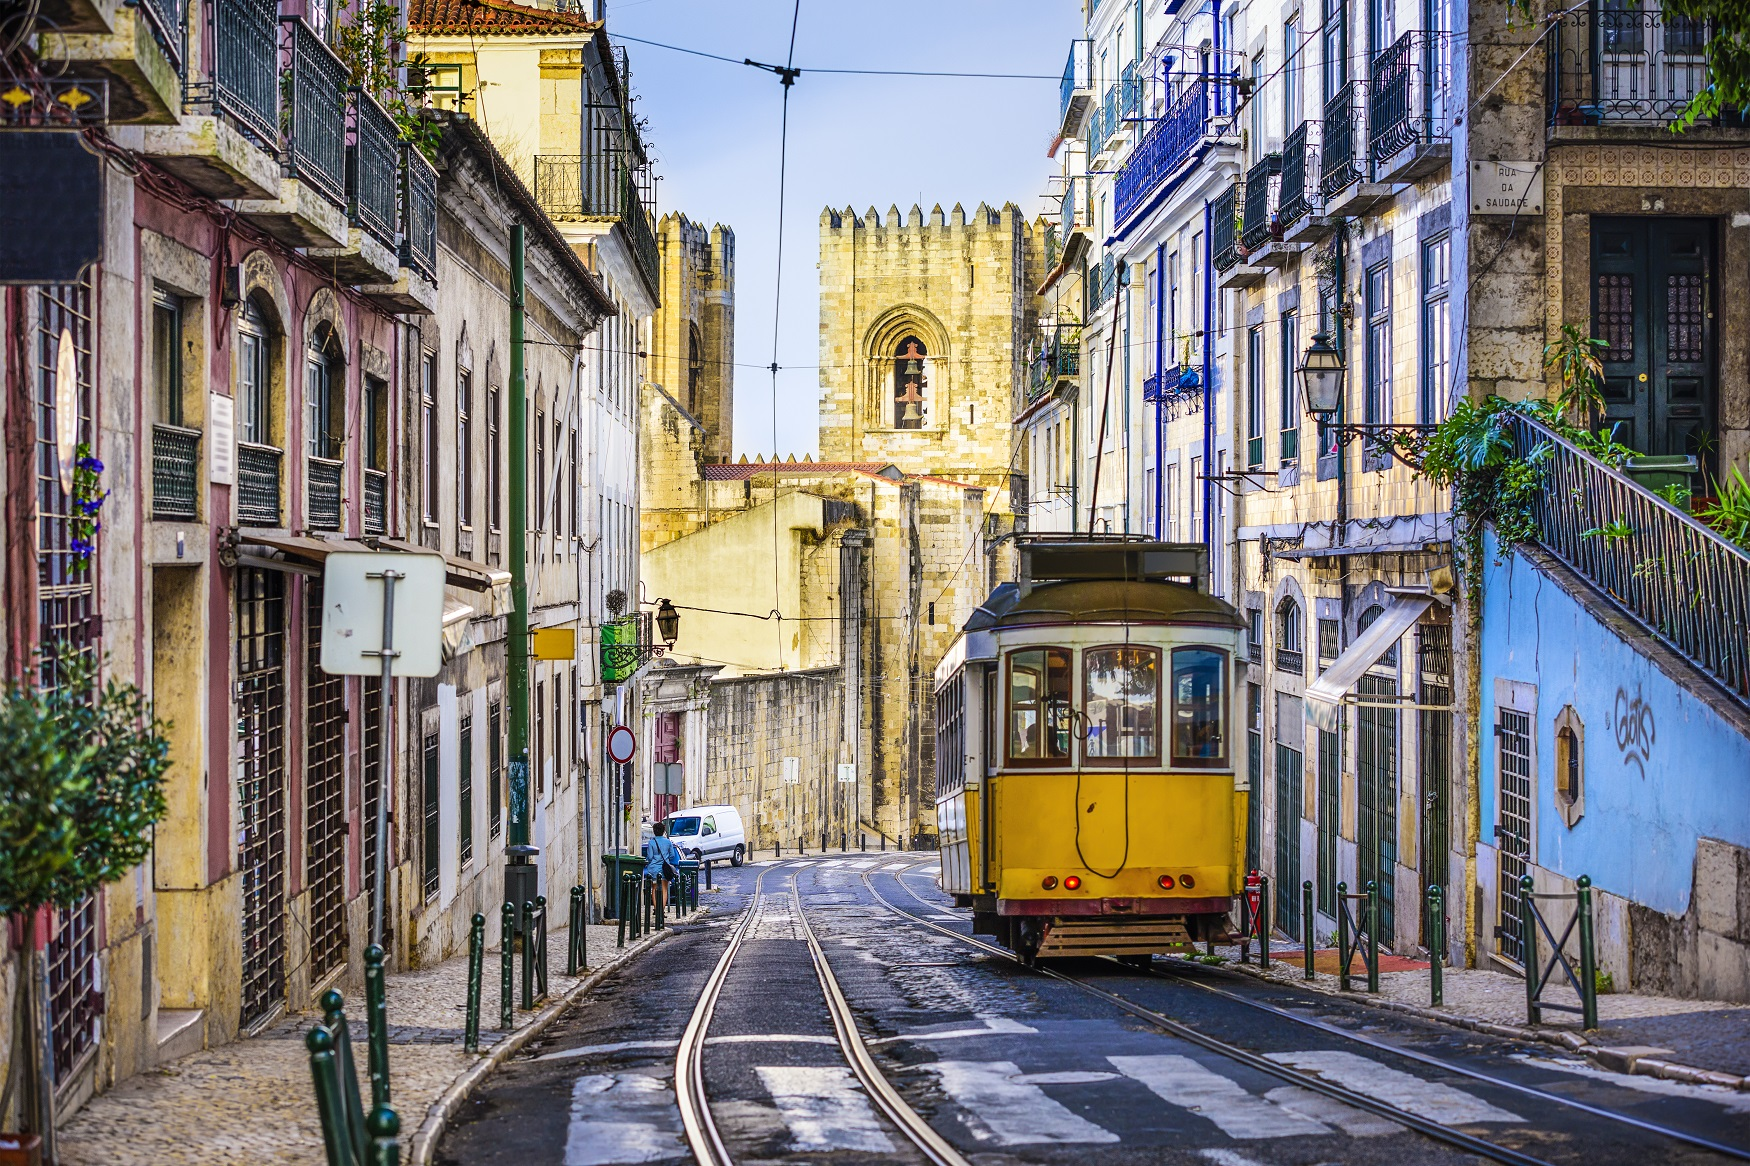 Photo of a yellow tram going down an old street in Lisbon